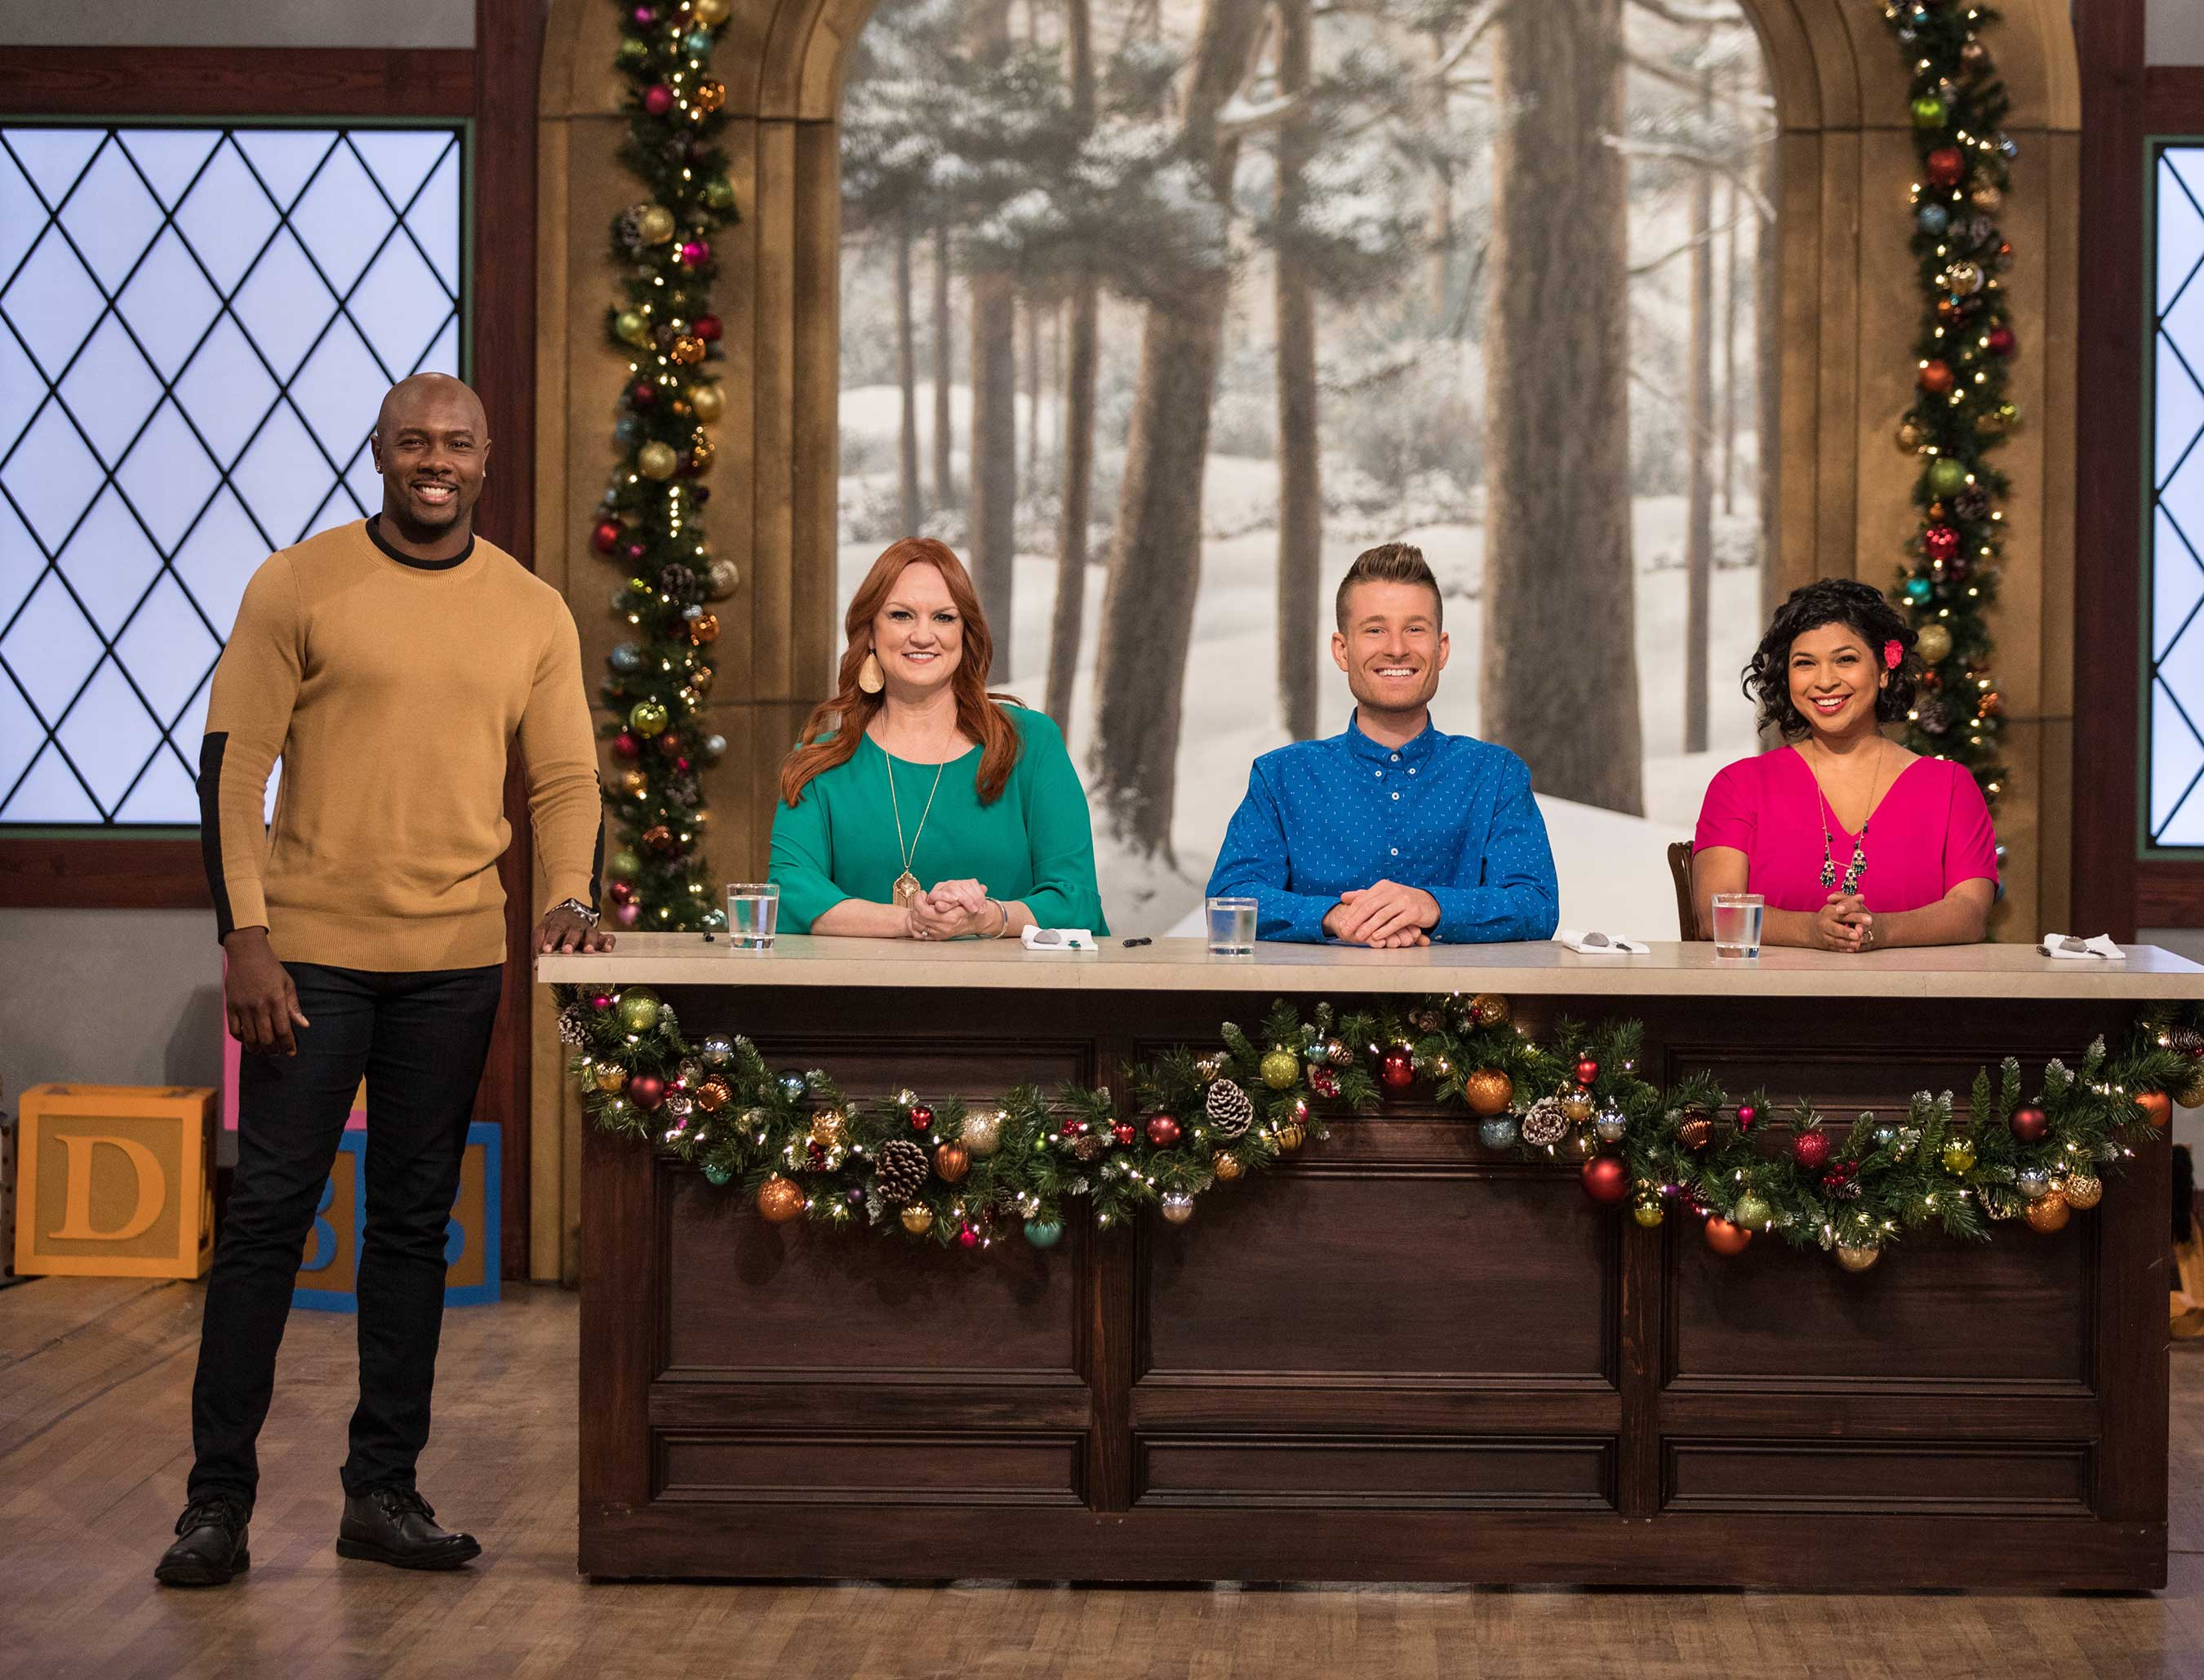 Food Network Sweetens Up The Holidays With The Holiday Baking